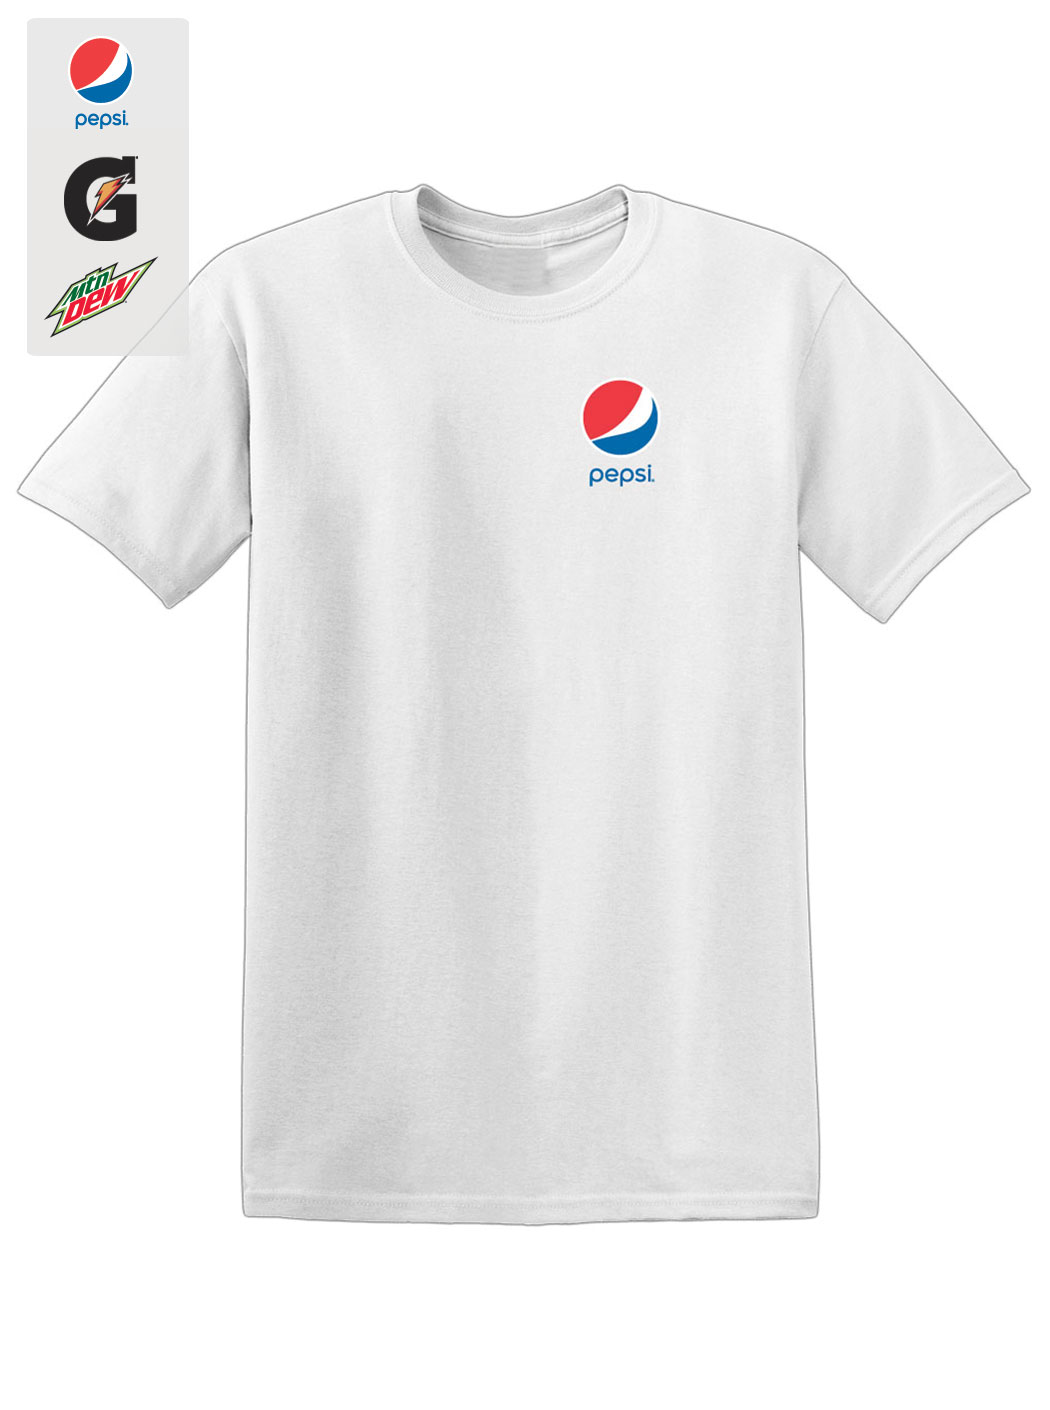 L/C White Tshirt - Login For Special $